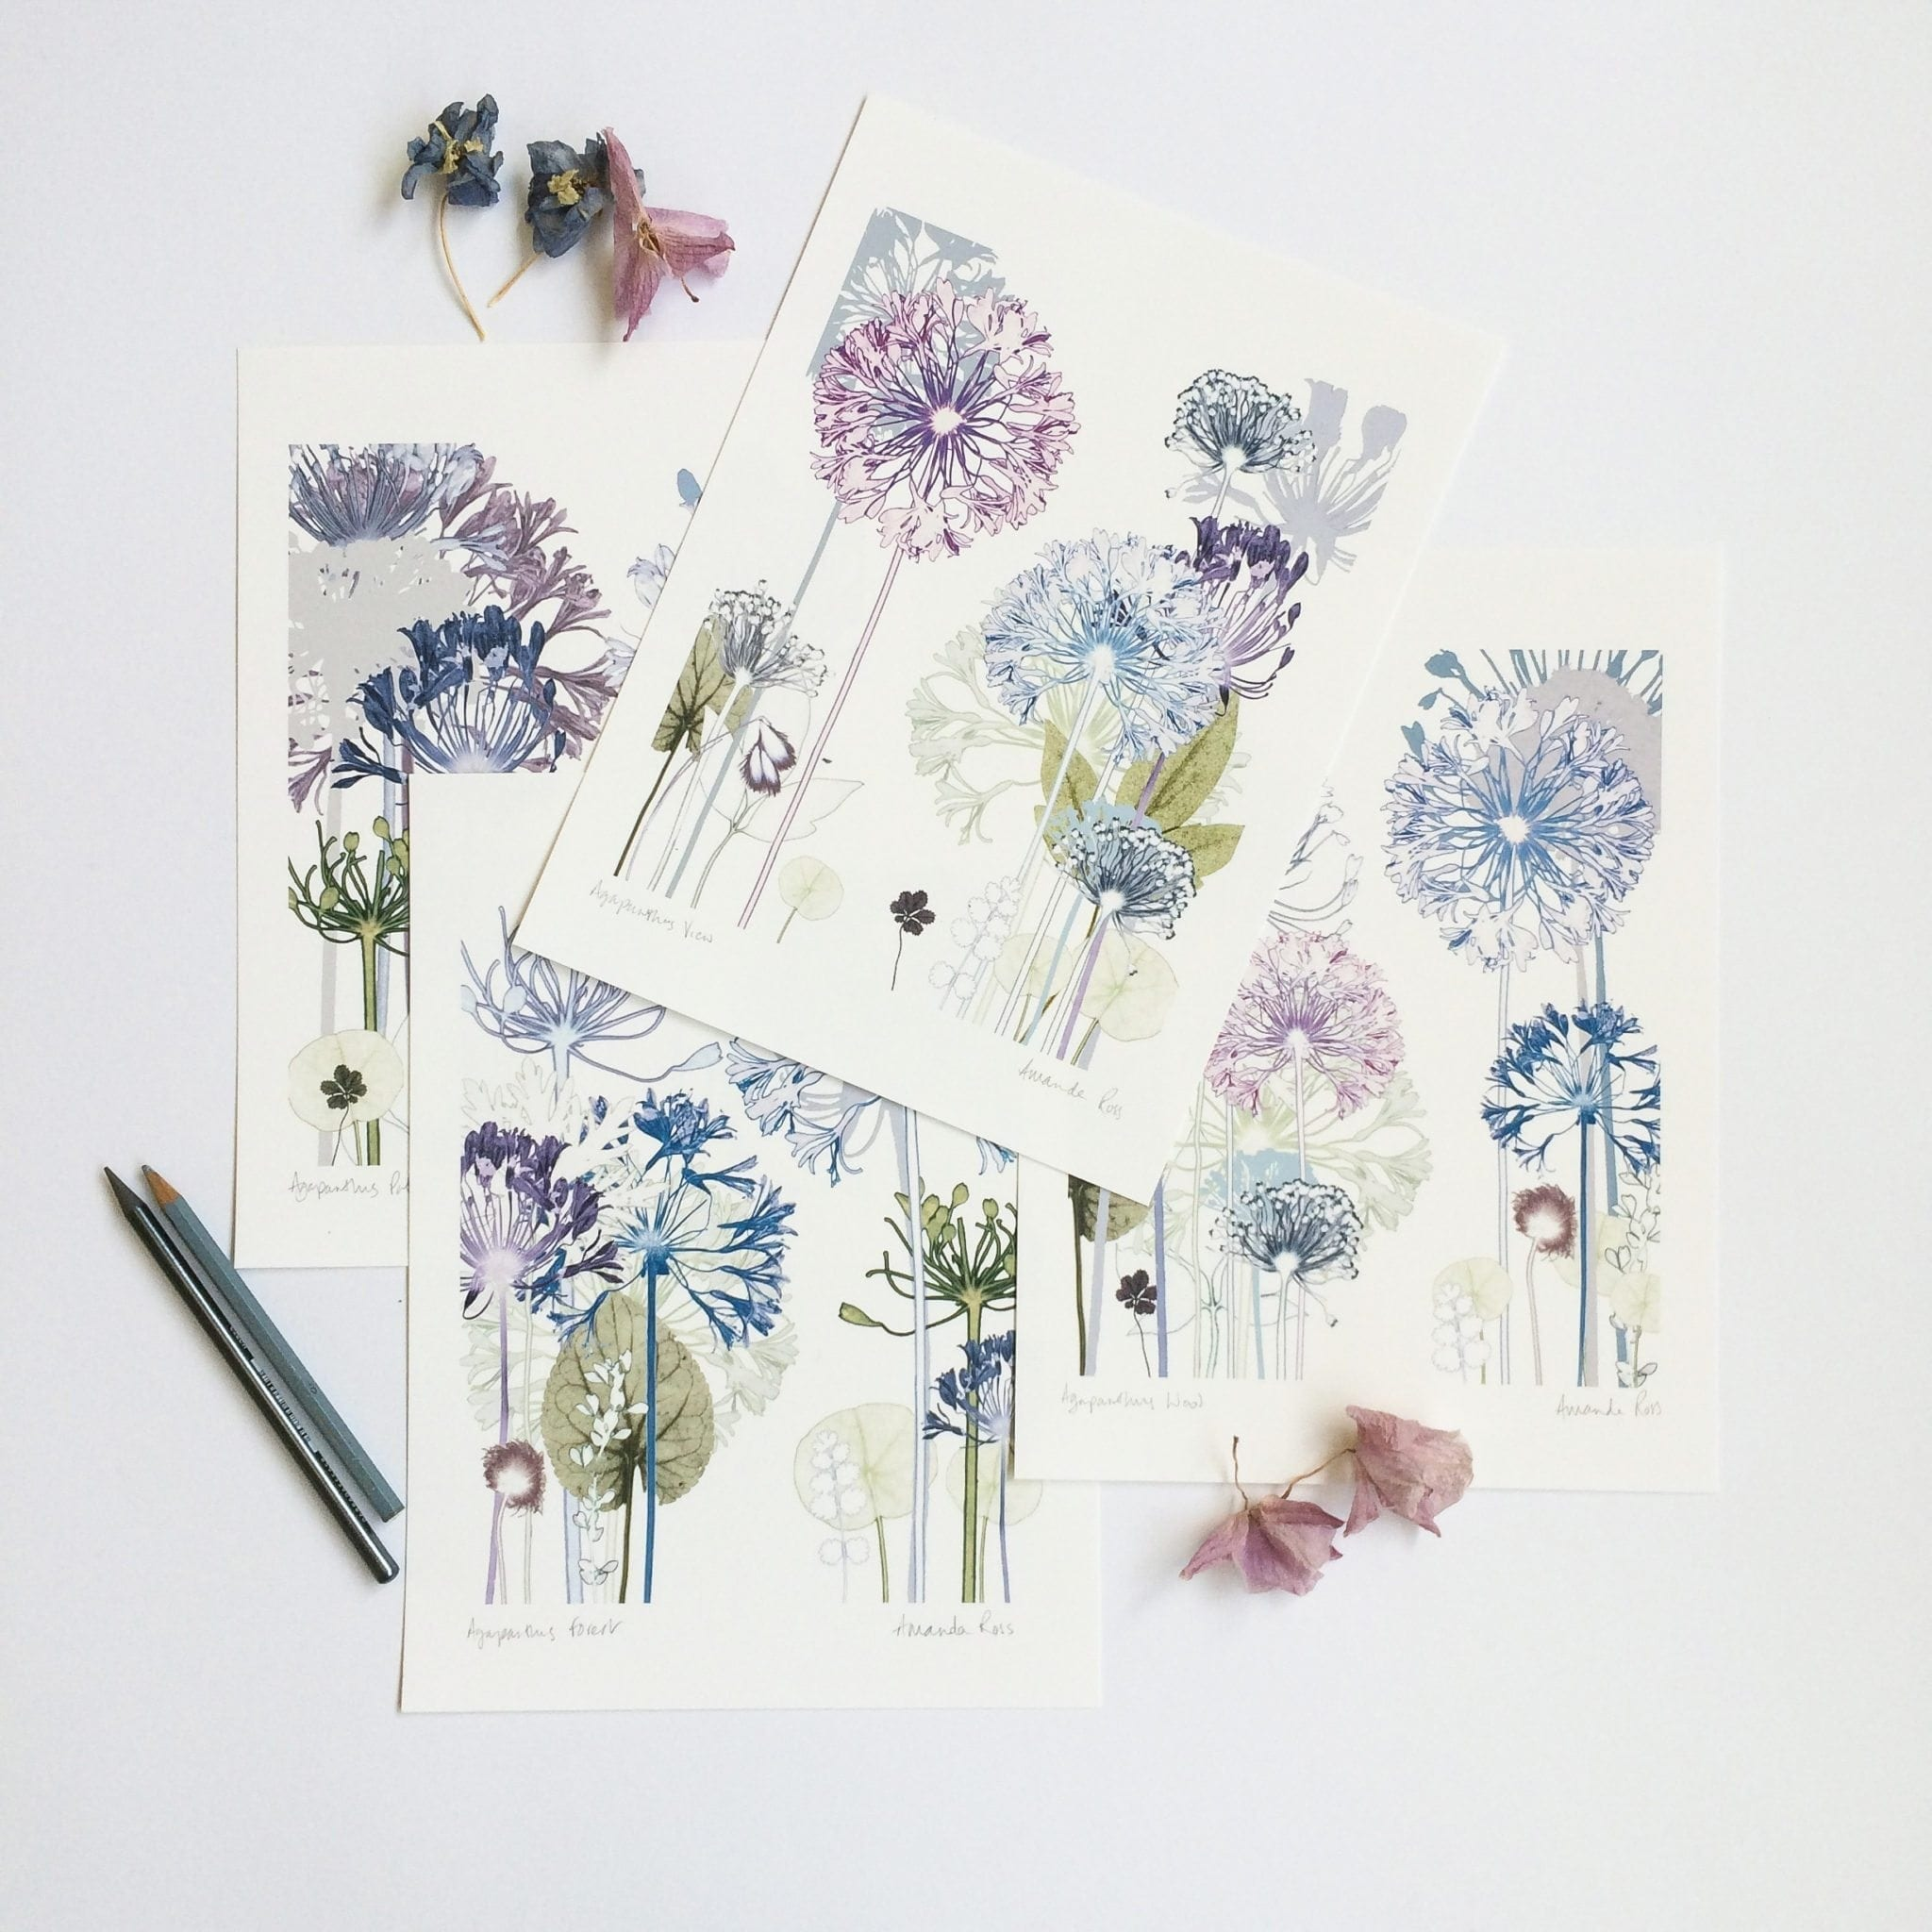 Floral artwork by artist Amanda Ross. Pretty wall art in botanical prints.